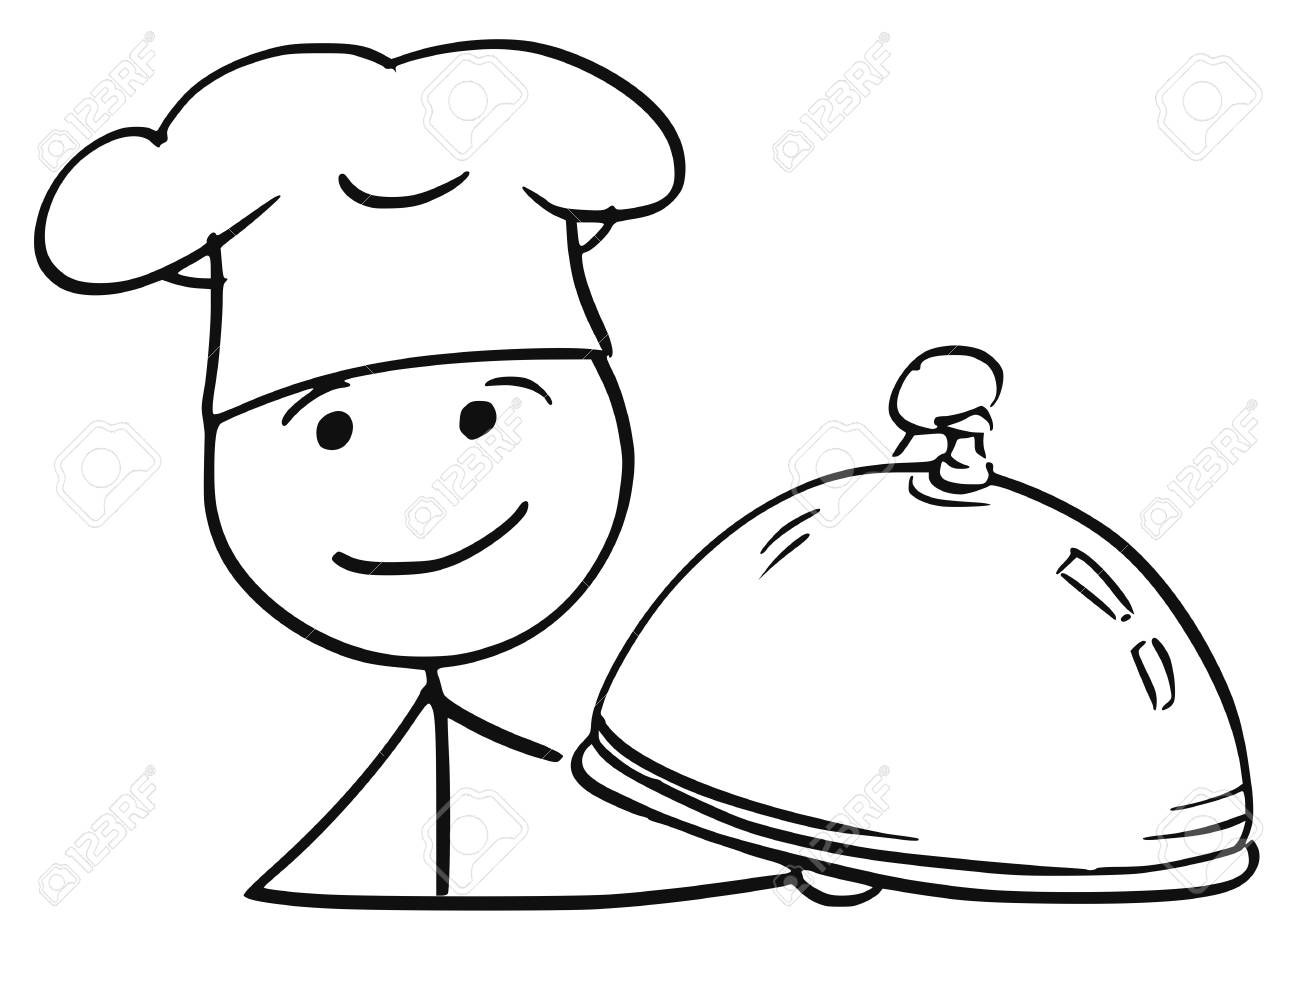 1300x994 Cartoon Vector Stick Man Stickman Drawing Of Male Cook Chef